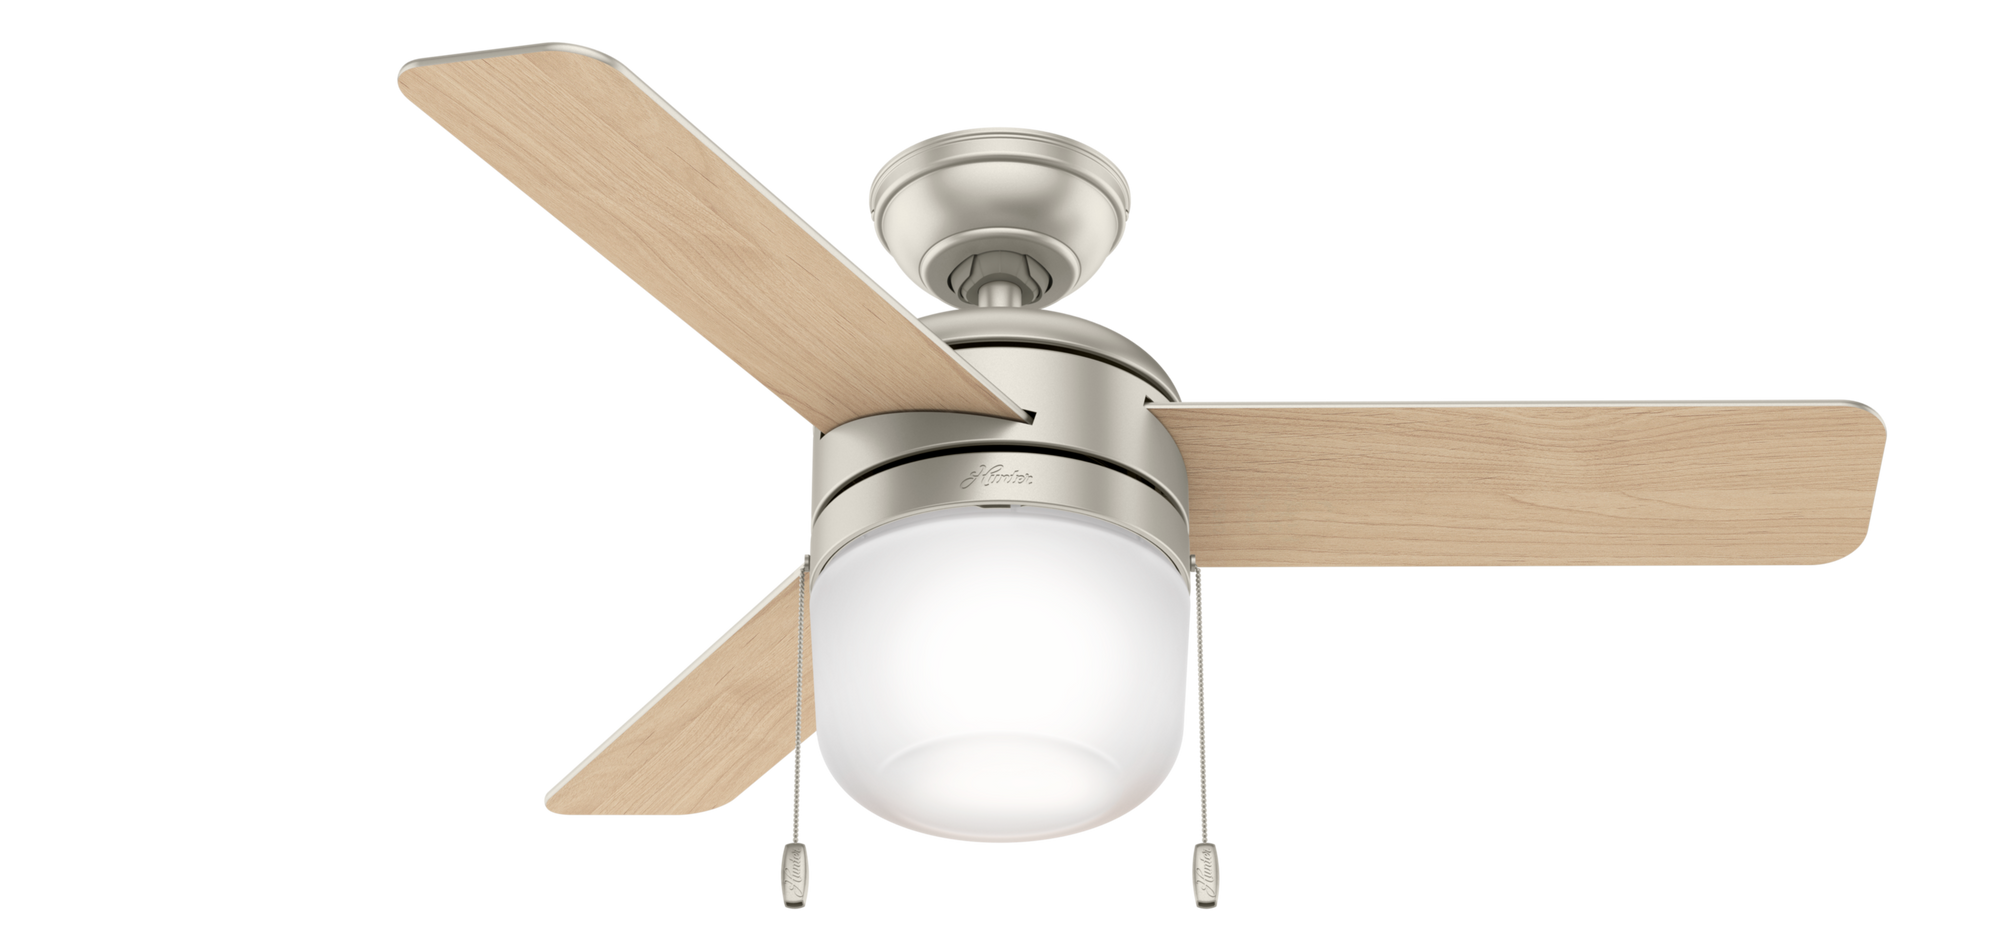 Hunter Indoor Acumen Ceiling Fan with LED LightJD inch, Brushed Nickel/Chrome, 59411